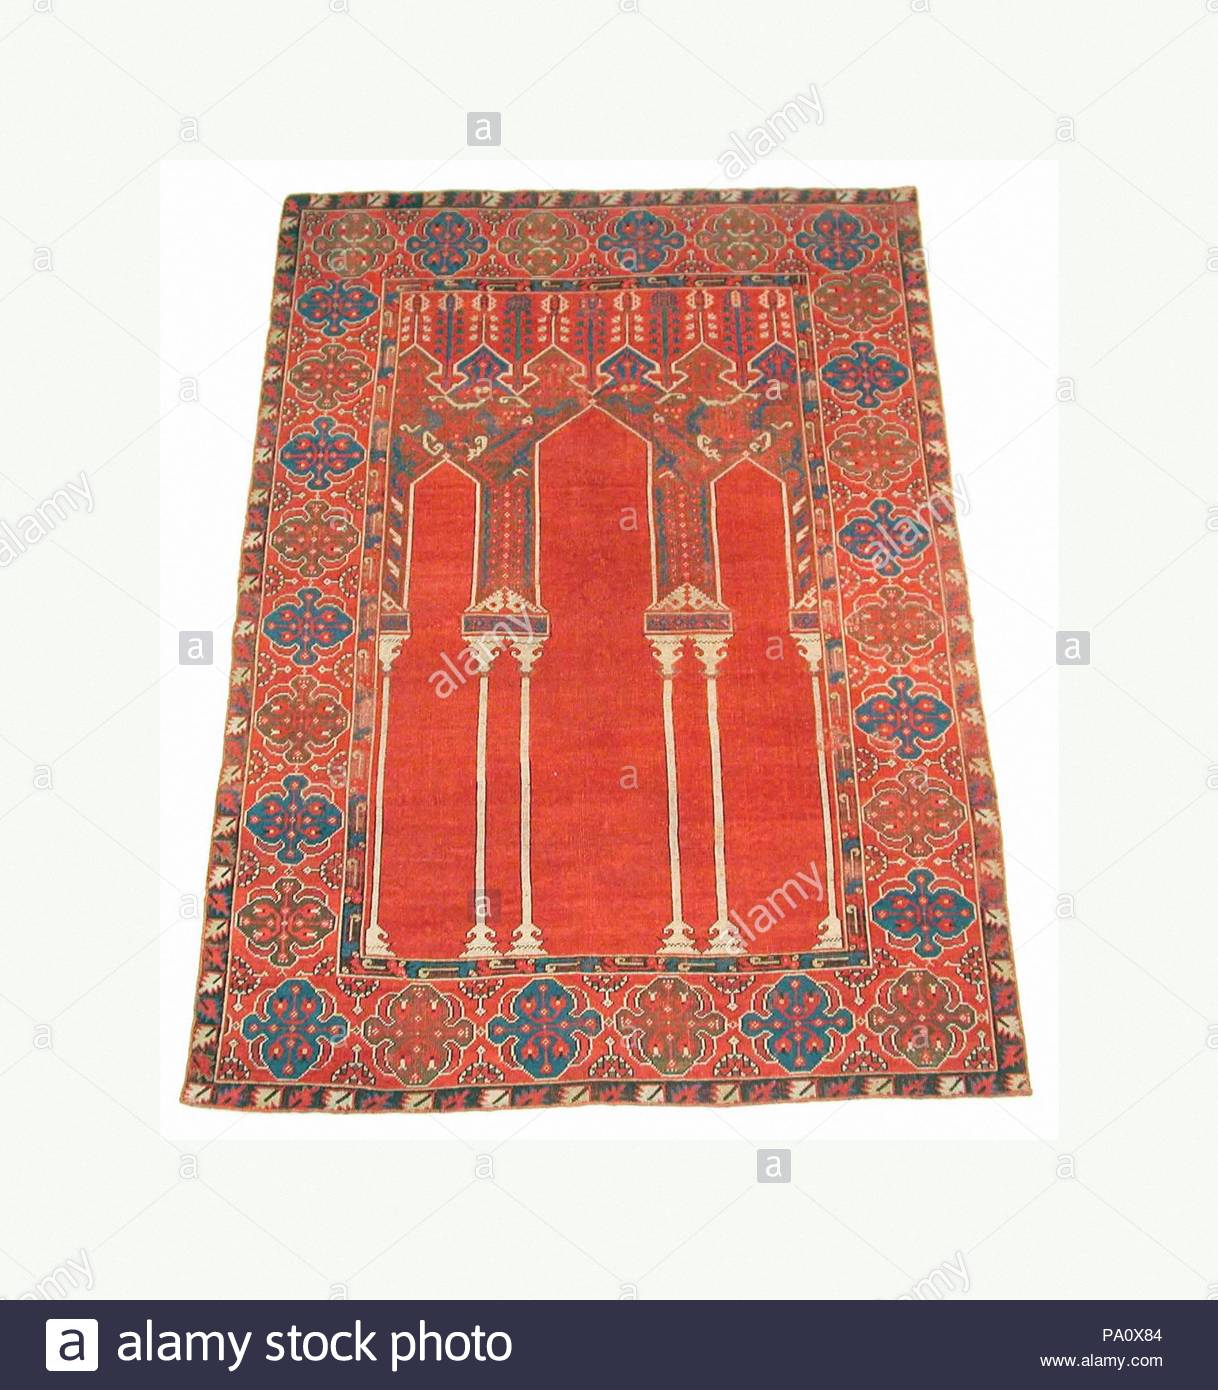 Prayer Rug With Triple Arch Design 18th Century Attributed To